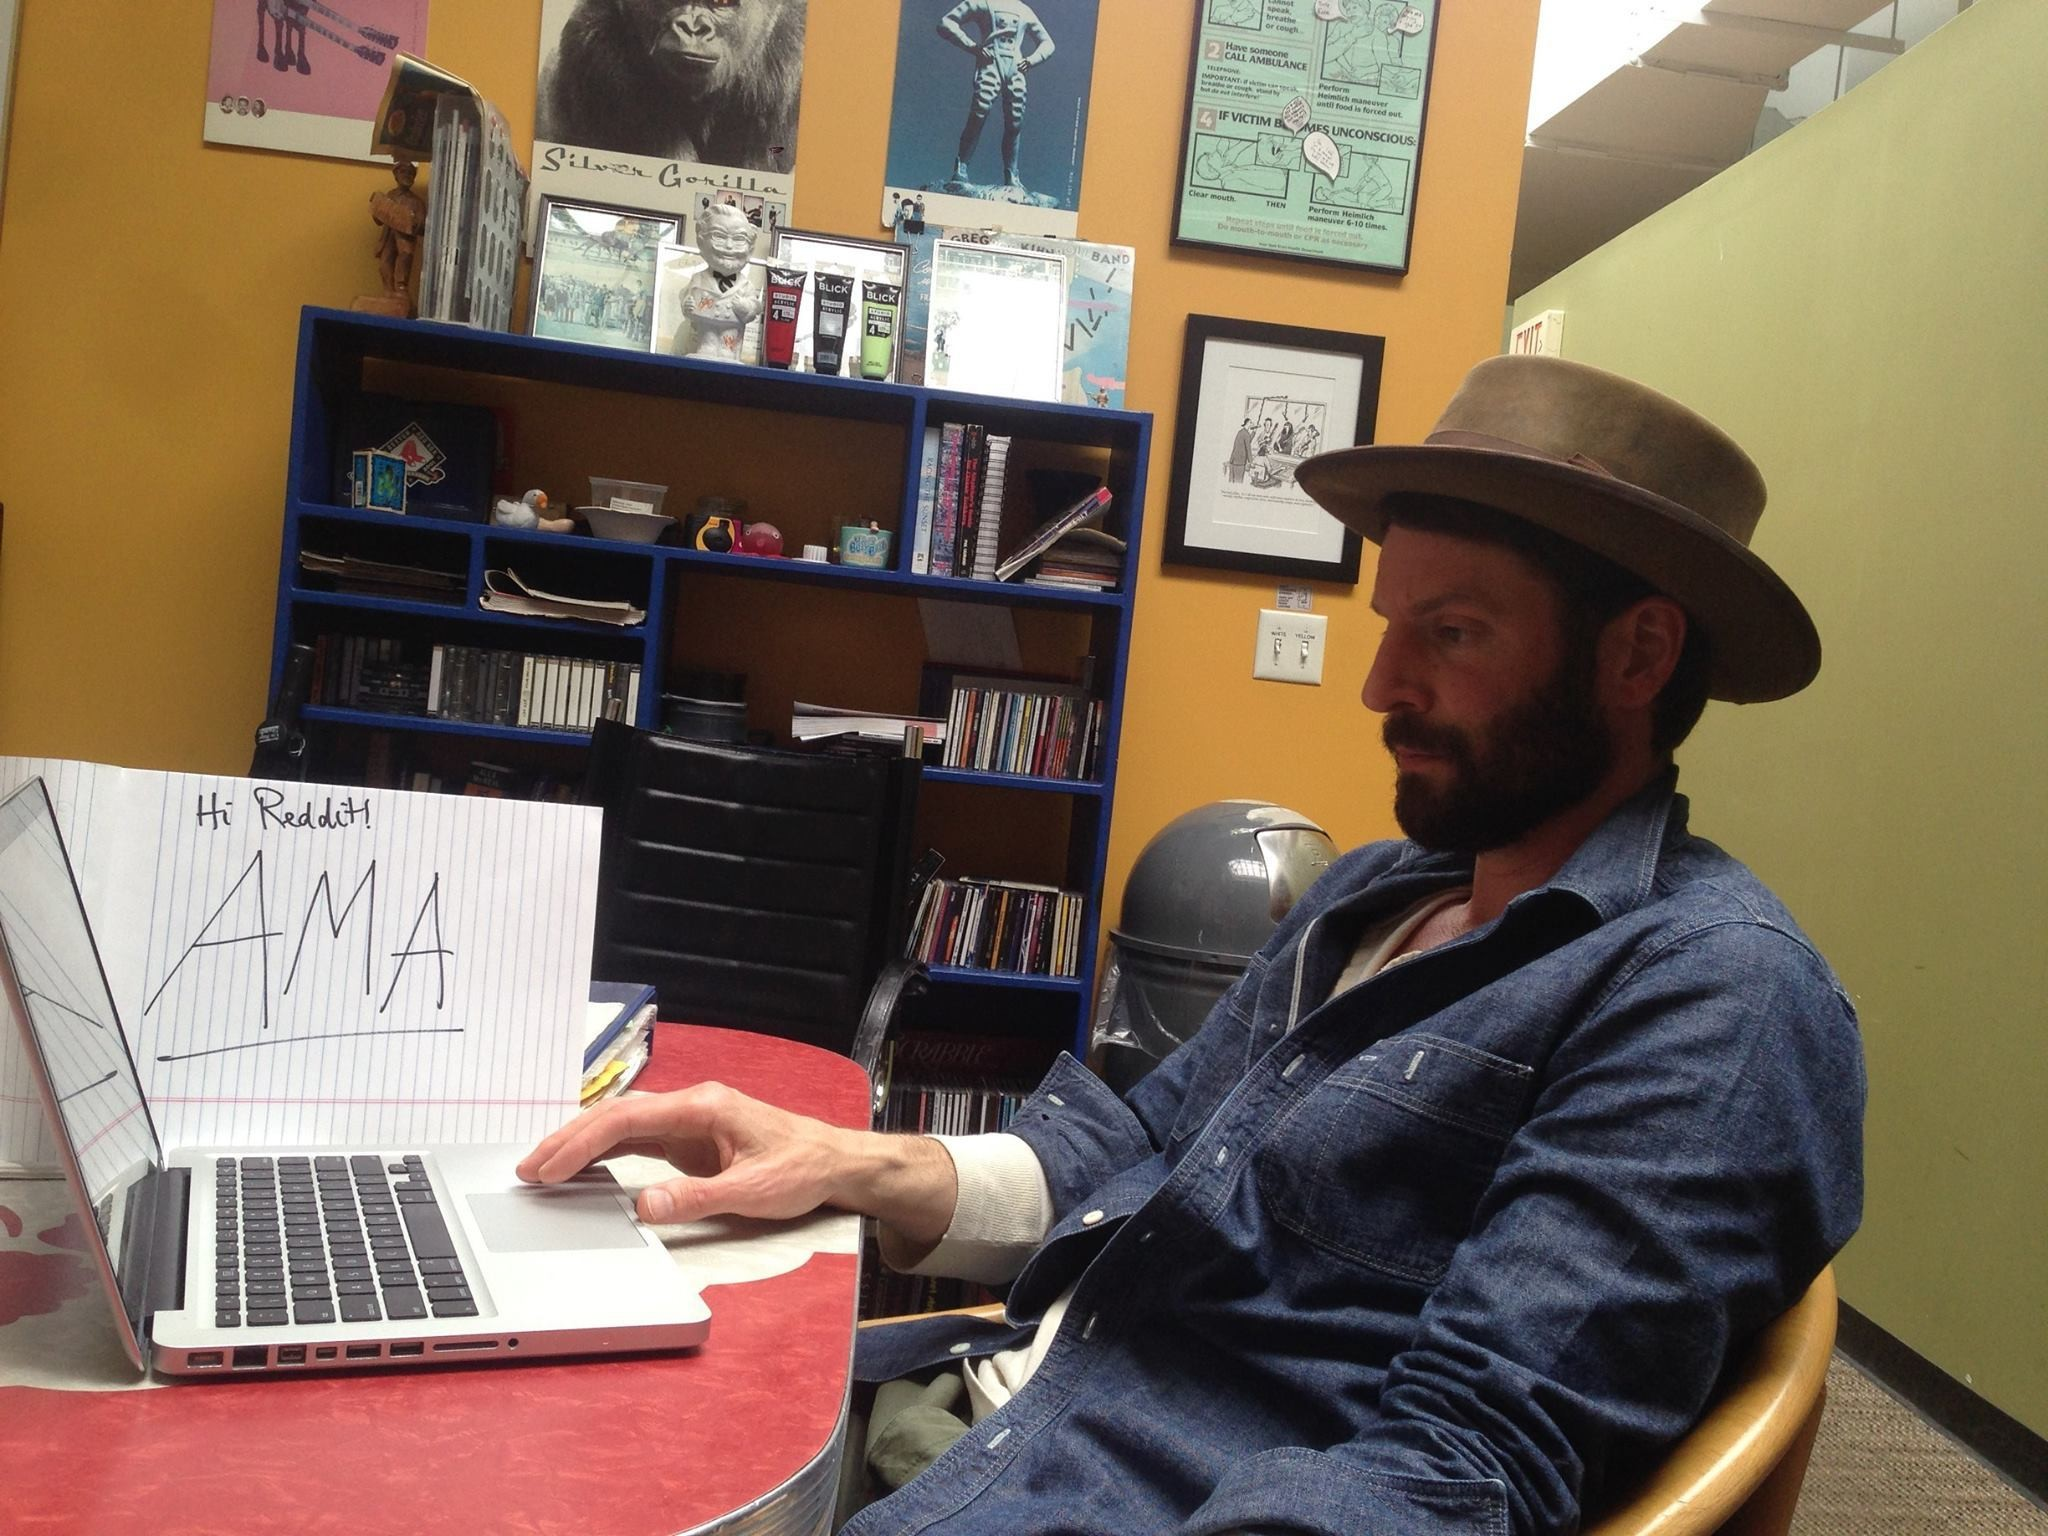 Ray LaMontagne opens up to fans (just a little) with Reddit